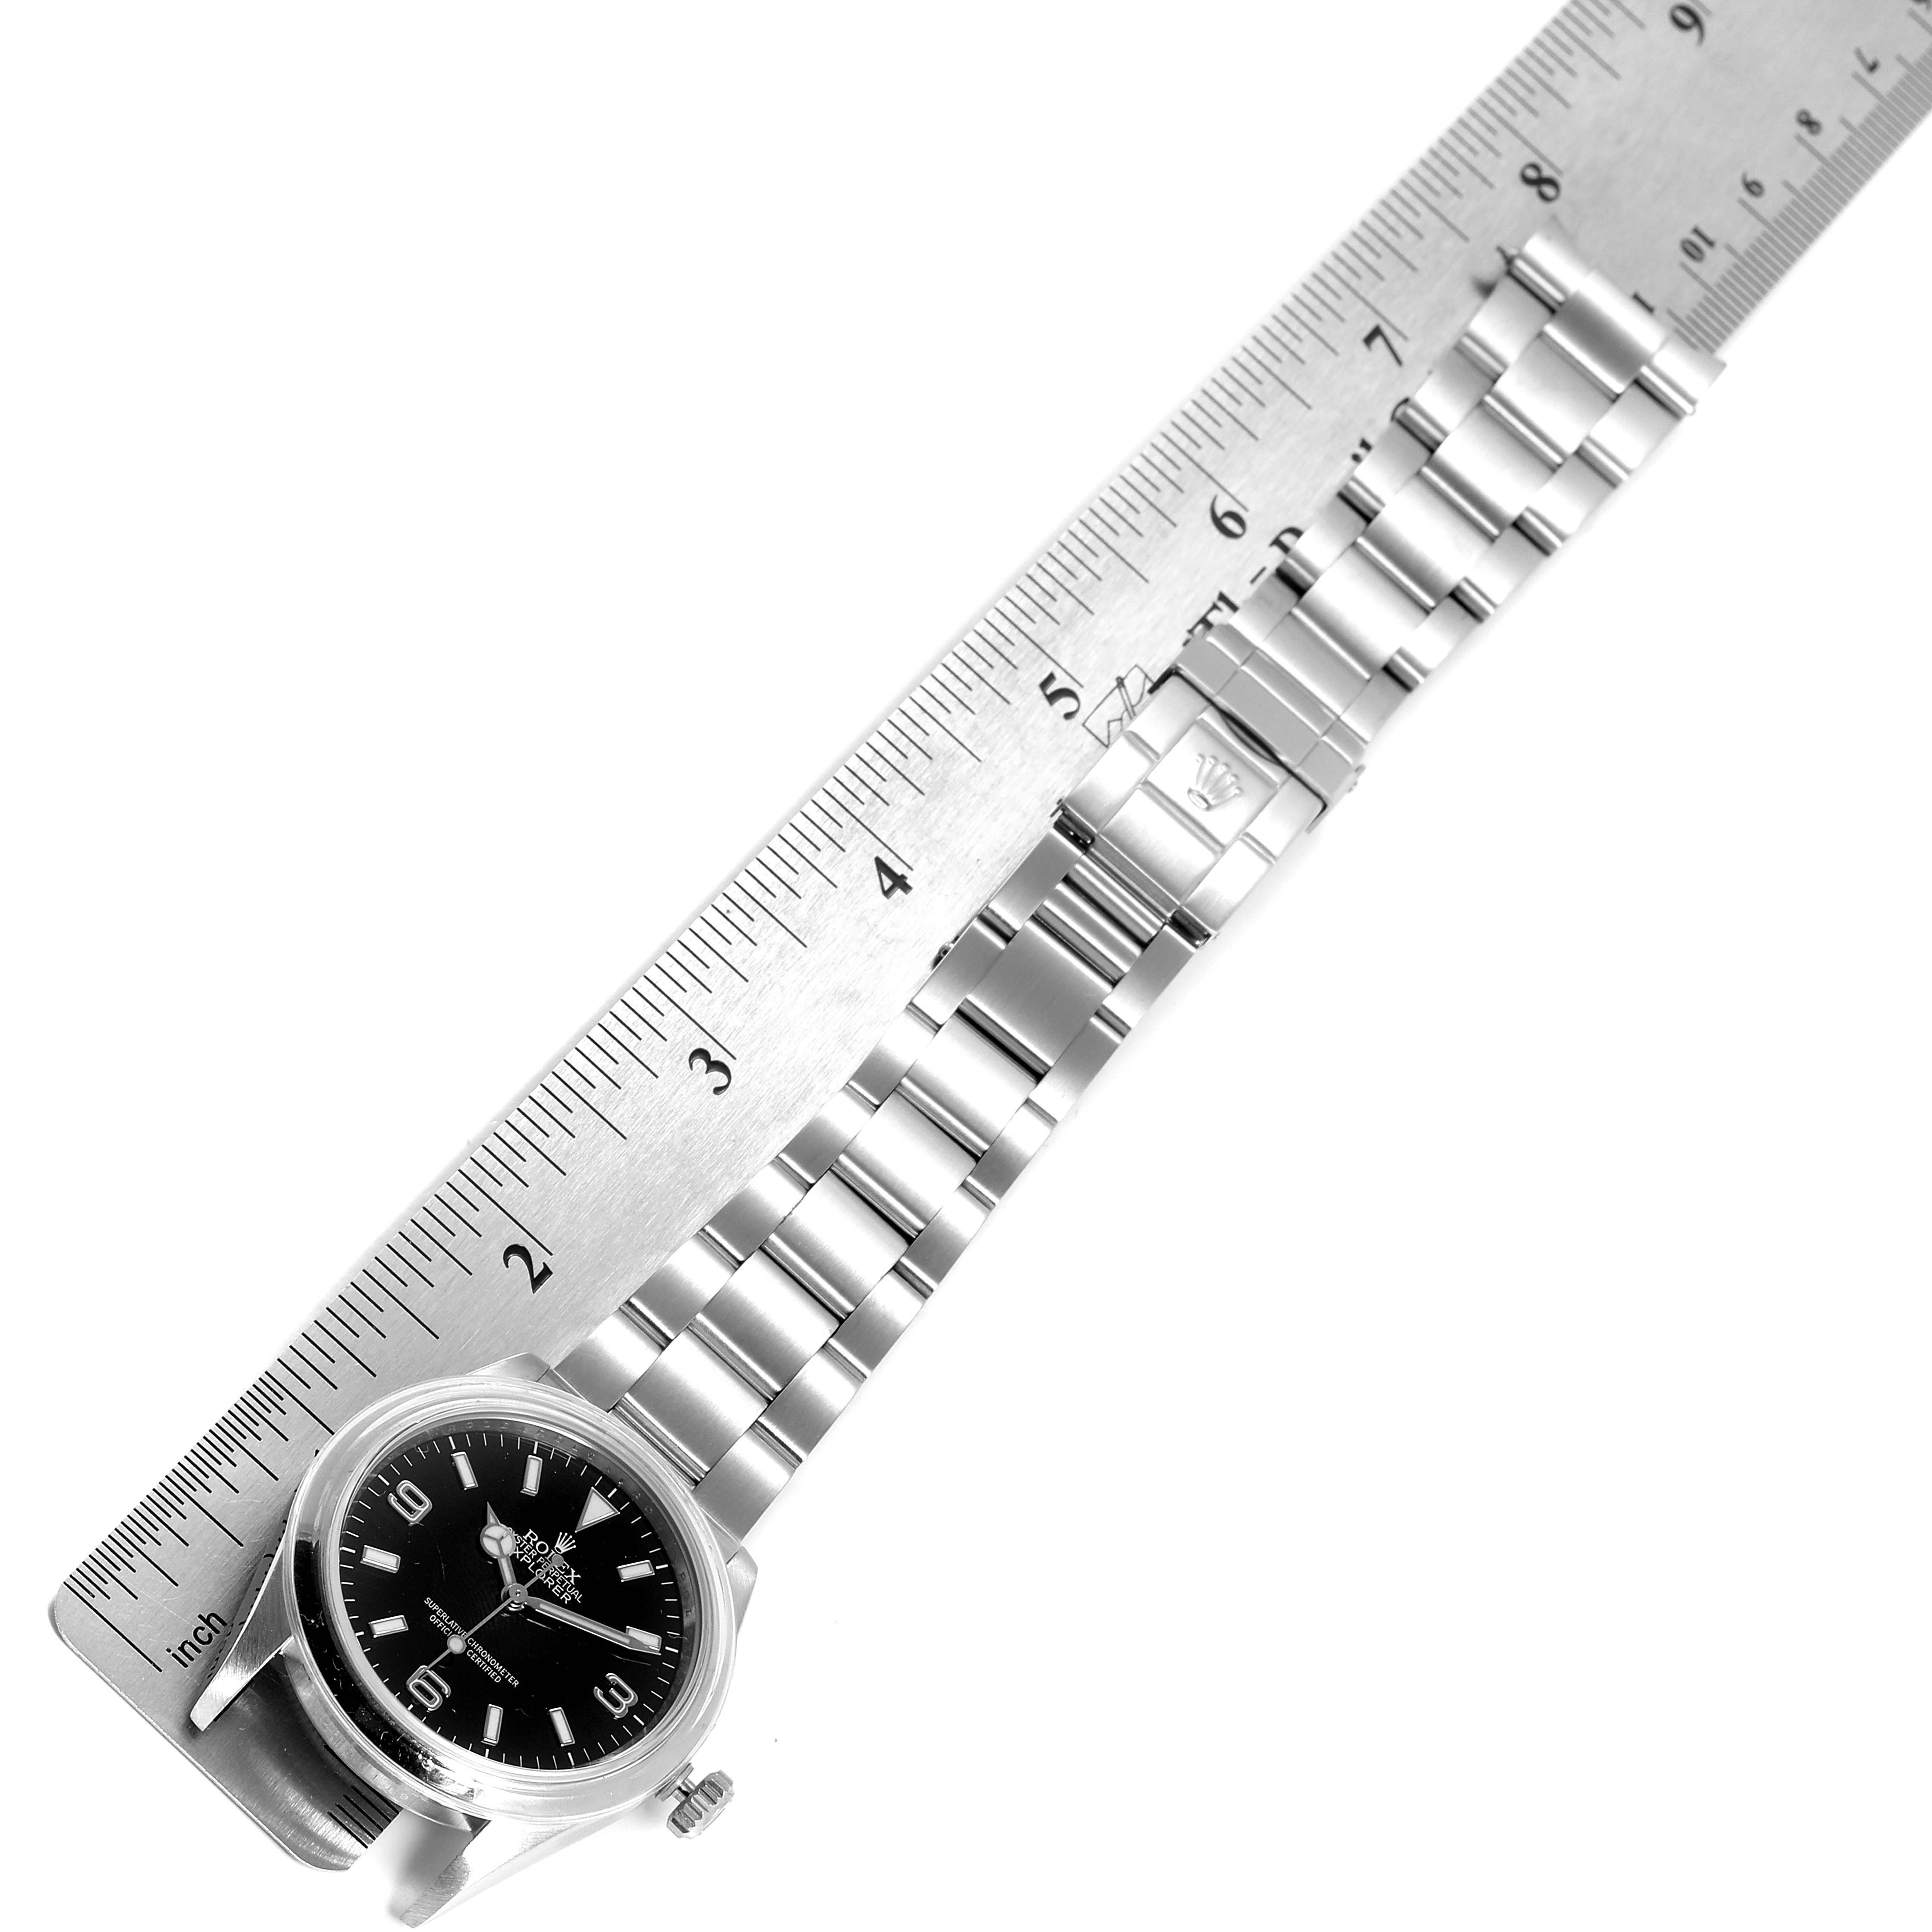 Rolex Explorer I Black Dial Stainless Steel Mens Watch 114270 Box Card SwissWatchExpo